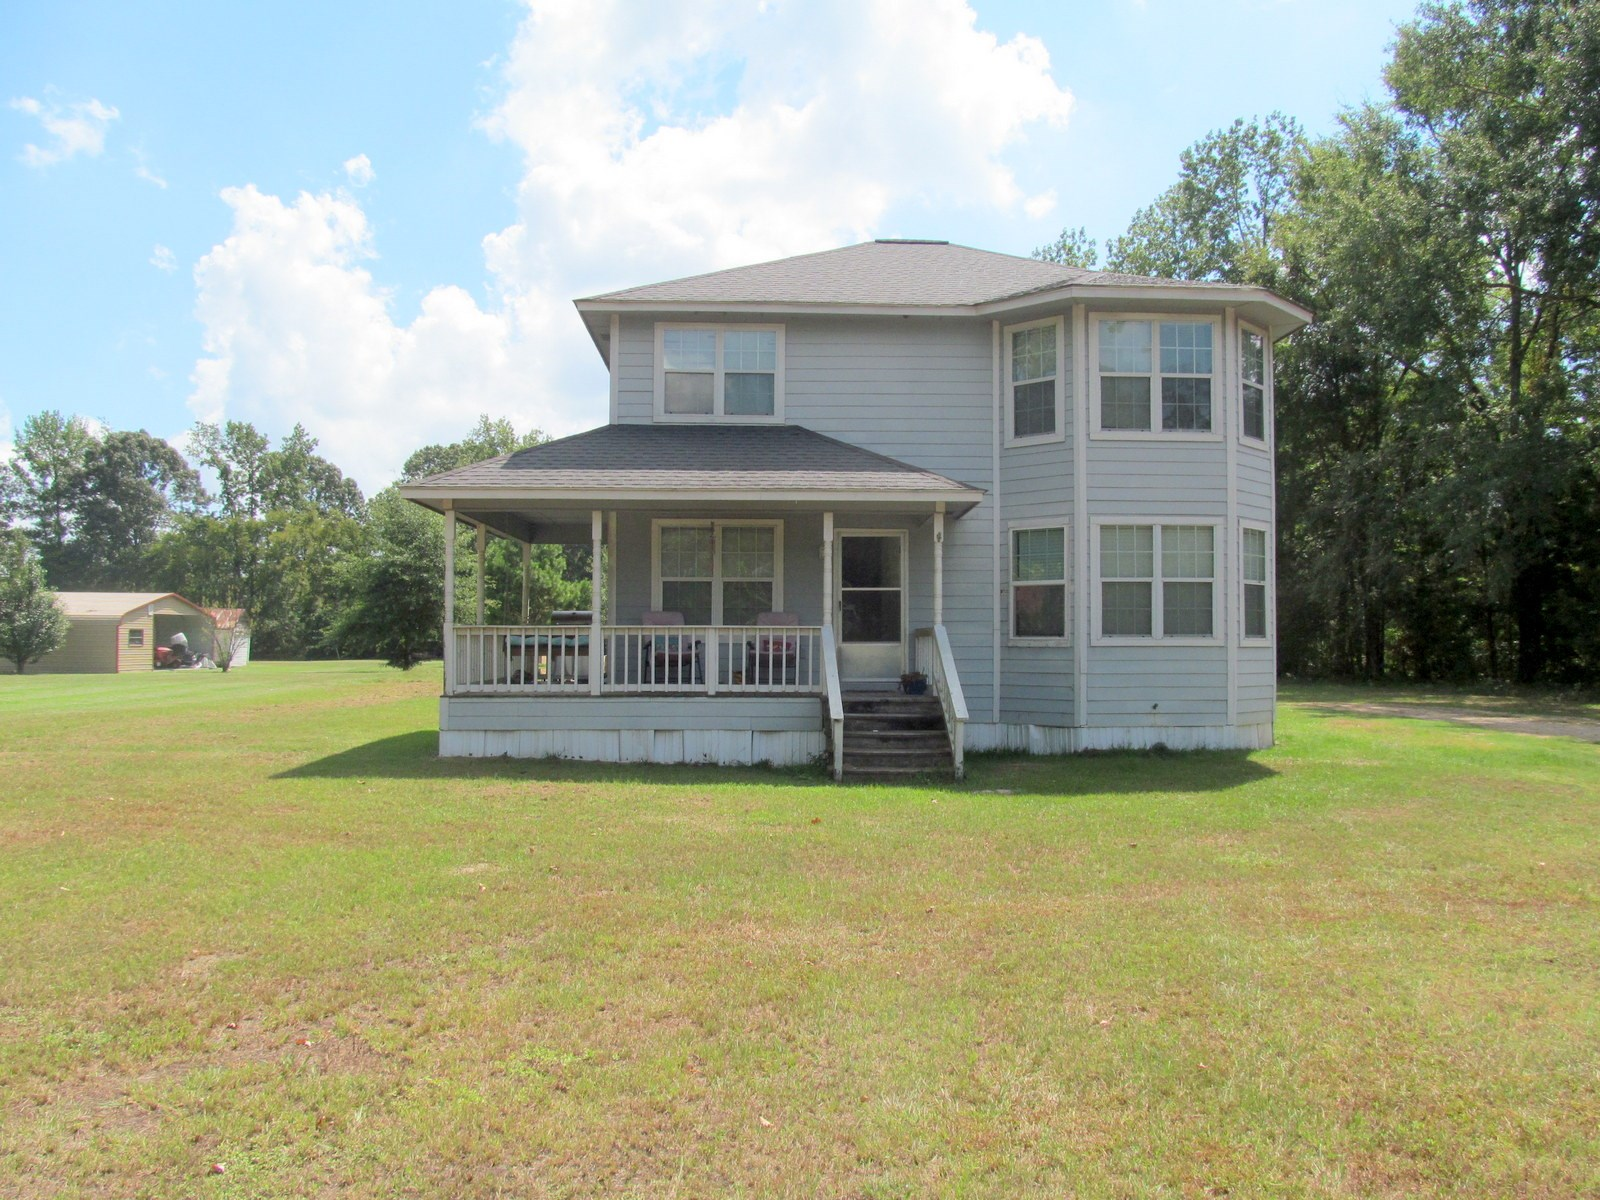 COUNTRY HOME ON 1 ACRES EAST TEXAS UPSHUR COUNTY 3BR-2BA